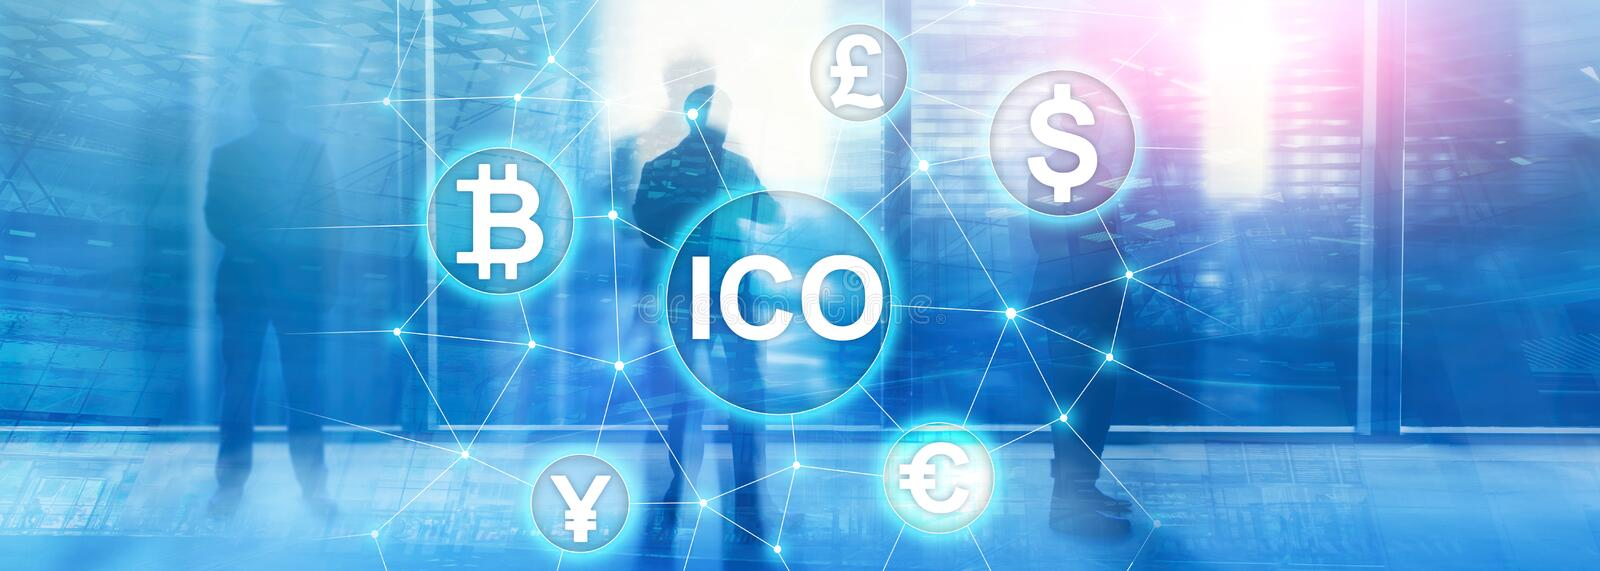 ICO - Initial coin offering, Blockchain and cryptocurrency concept on blurred business building background.  stock image